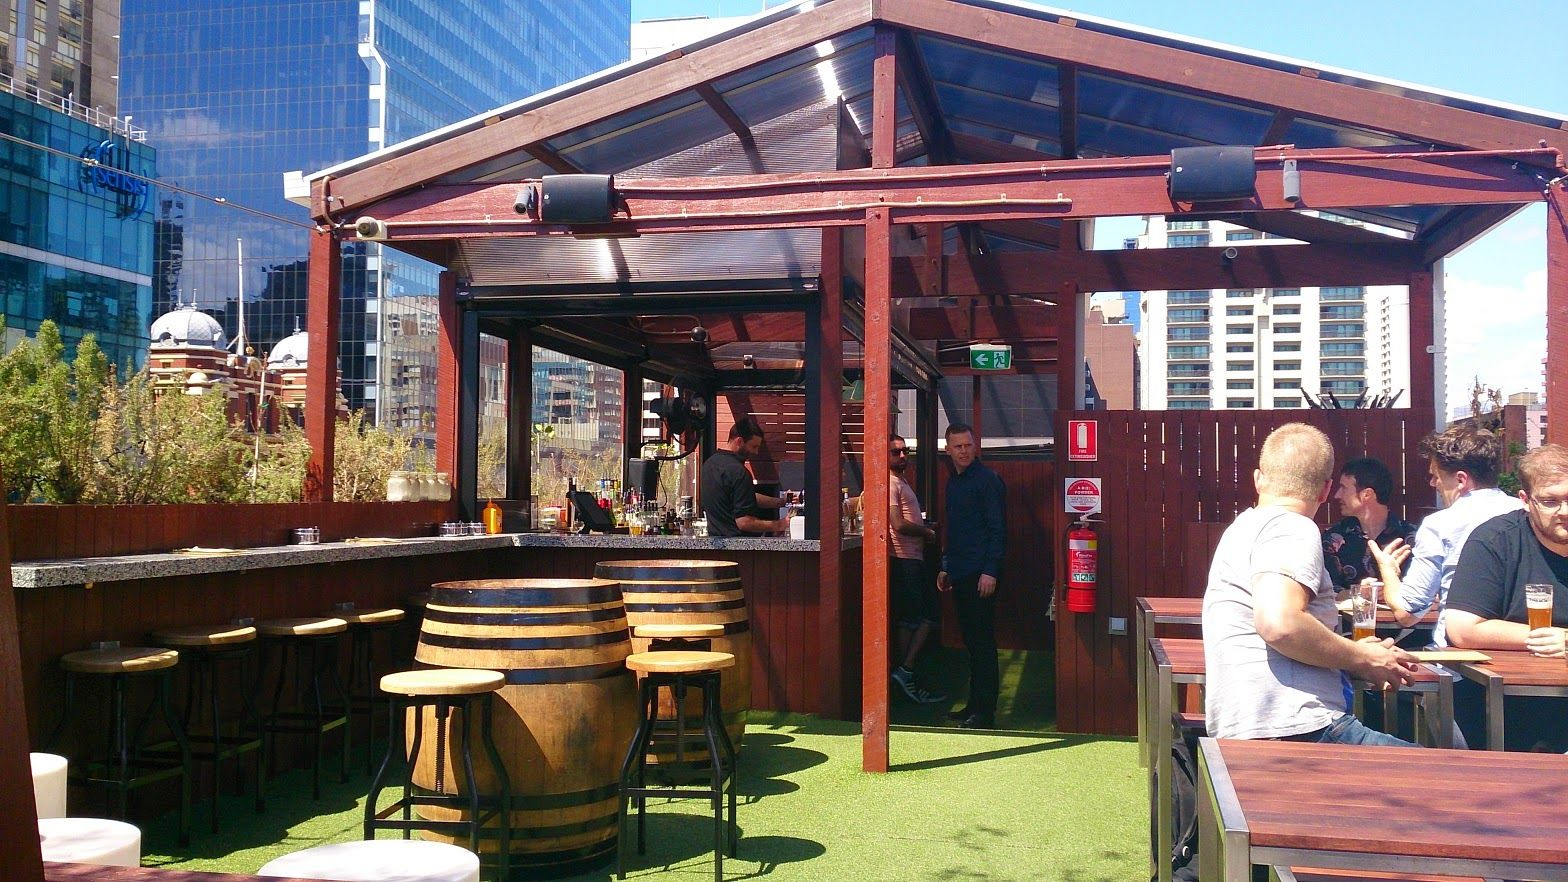 Rooftop Bar and Cinema is located at the top of Curtin House, Swanston Street, in the heart of Melbourne's CBD (between Little Bourke and Lonsdale Streets). Enter the lobby from Swanston Street, then take the lift (or brave the stairs) to level 6.